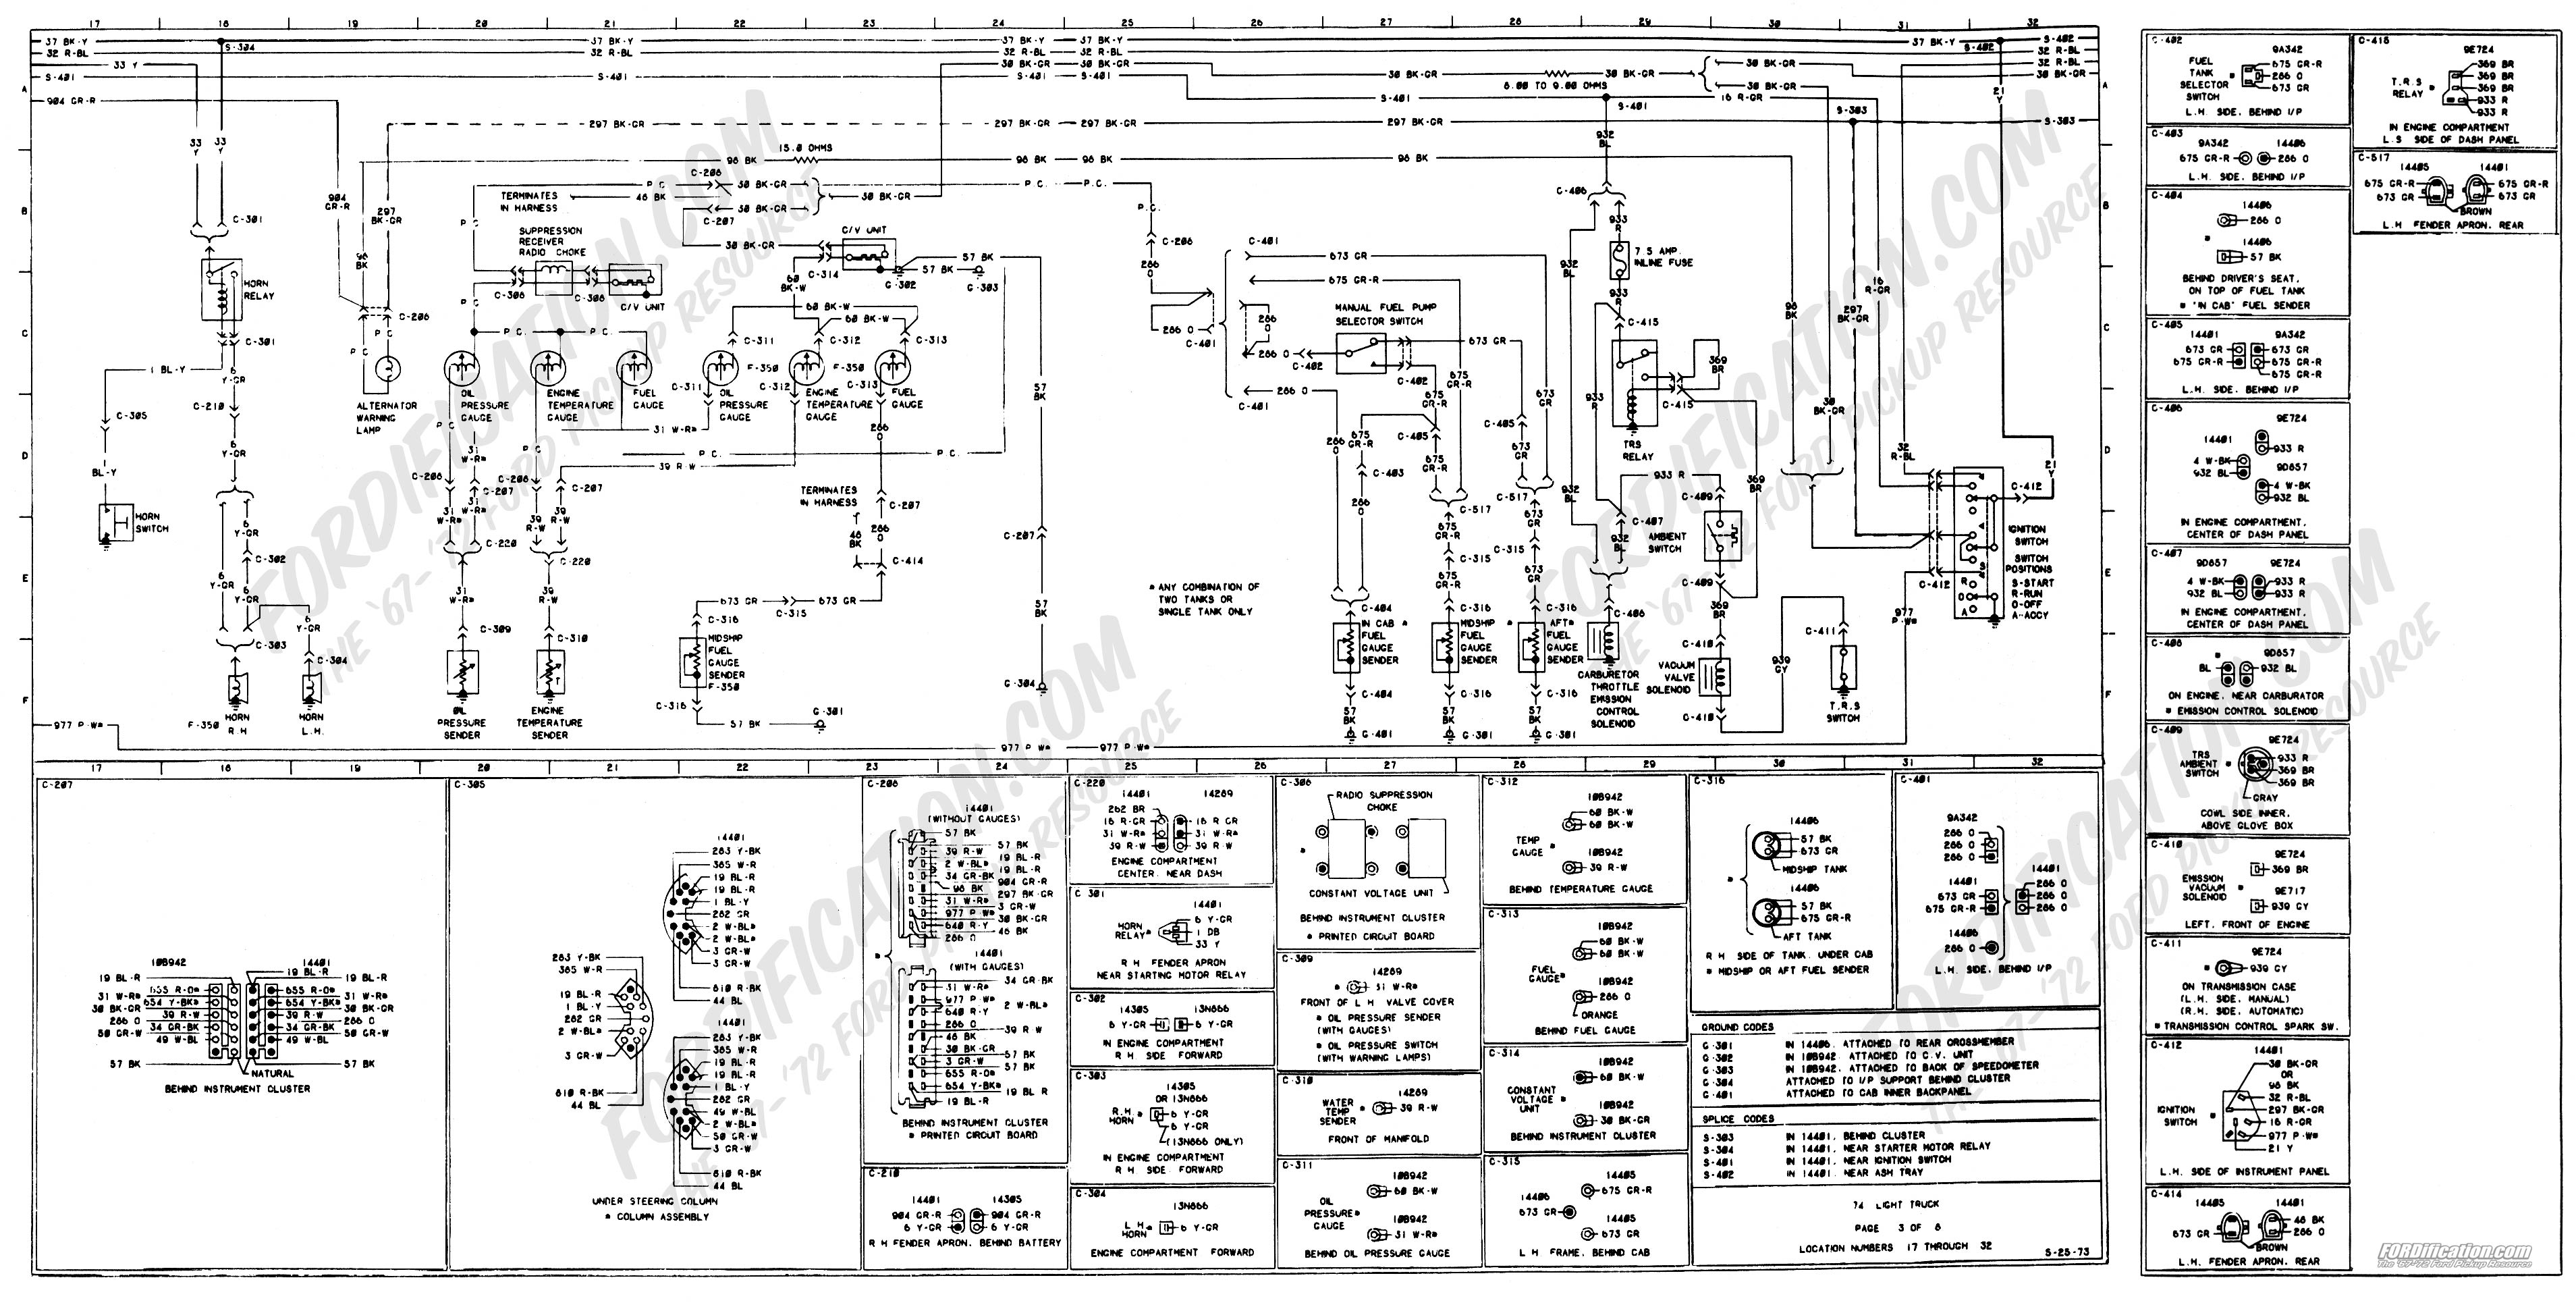 f350 wire diagram wiring diagram progresif1973 1979 ford truck wiring diagrams \u0026 schematics fordification net camaro wire diagram f350 wire diagram